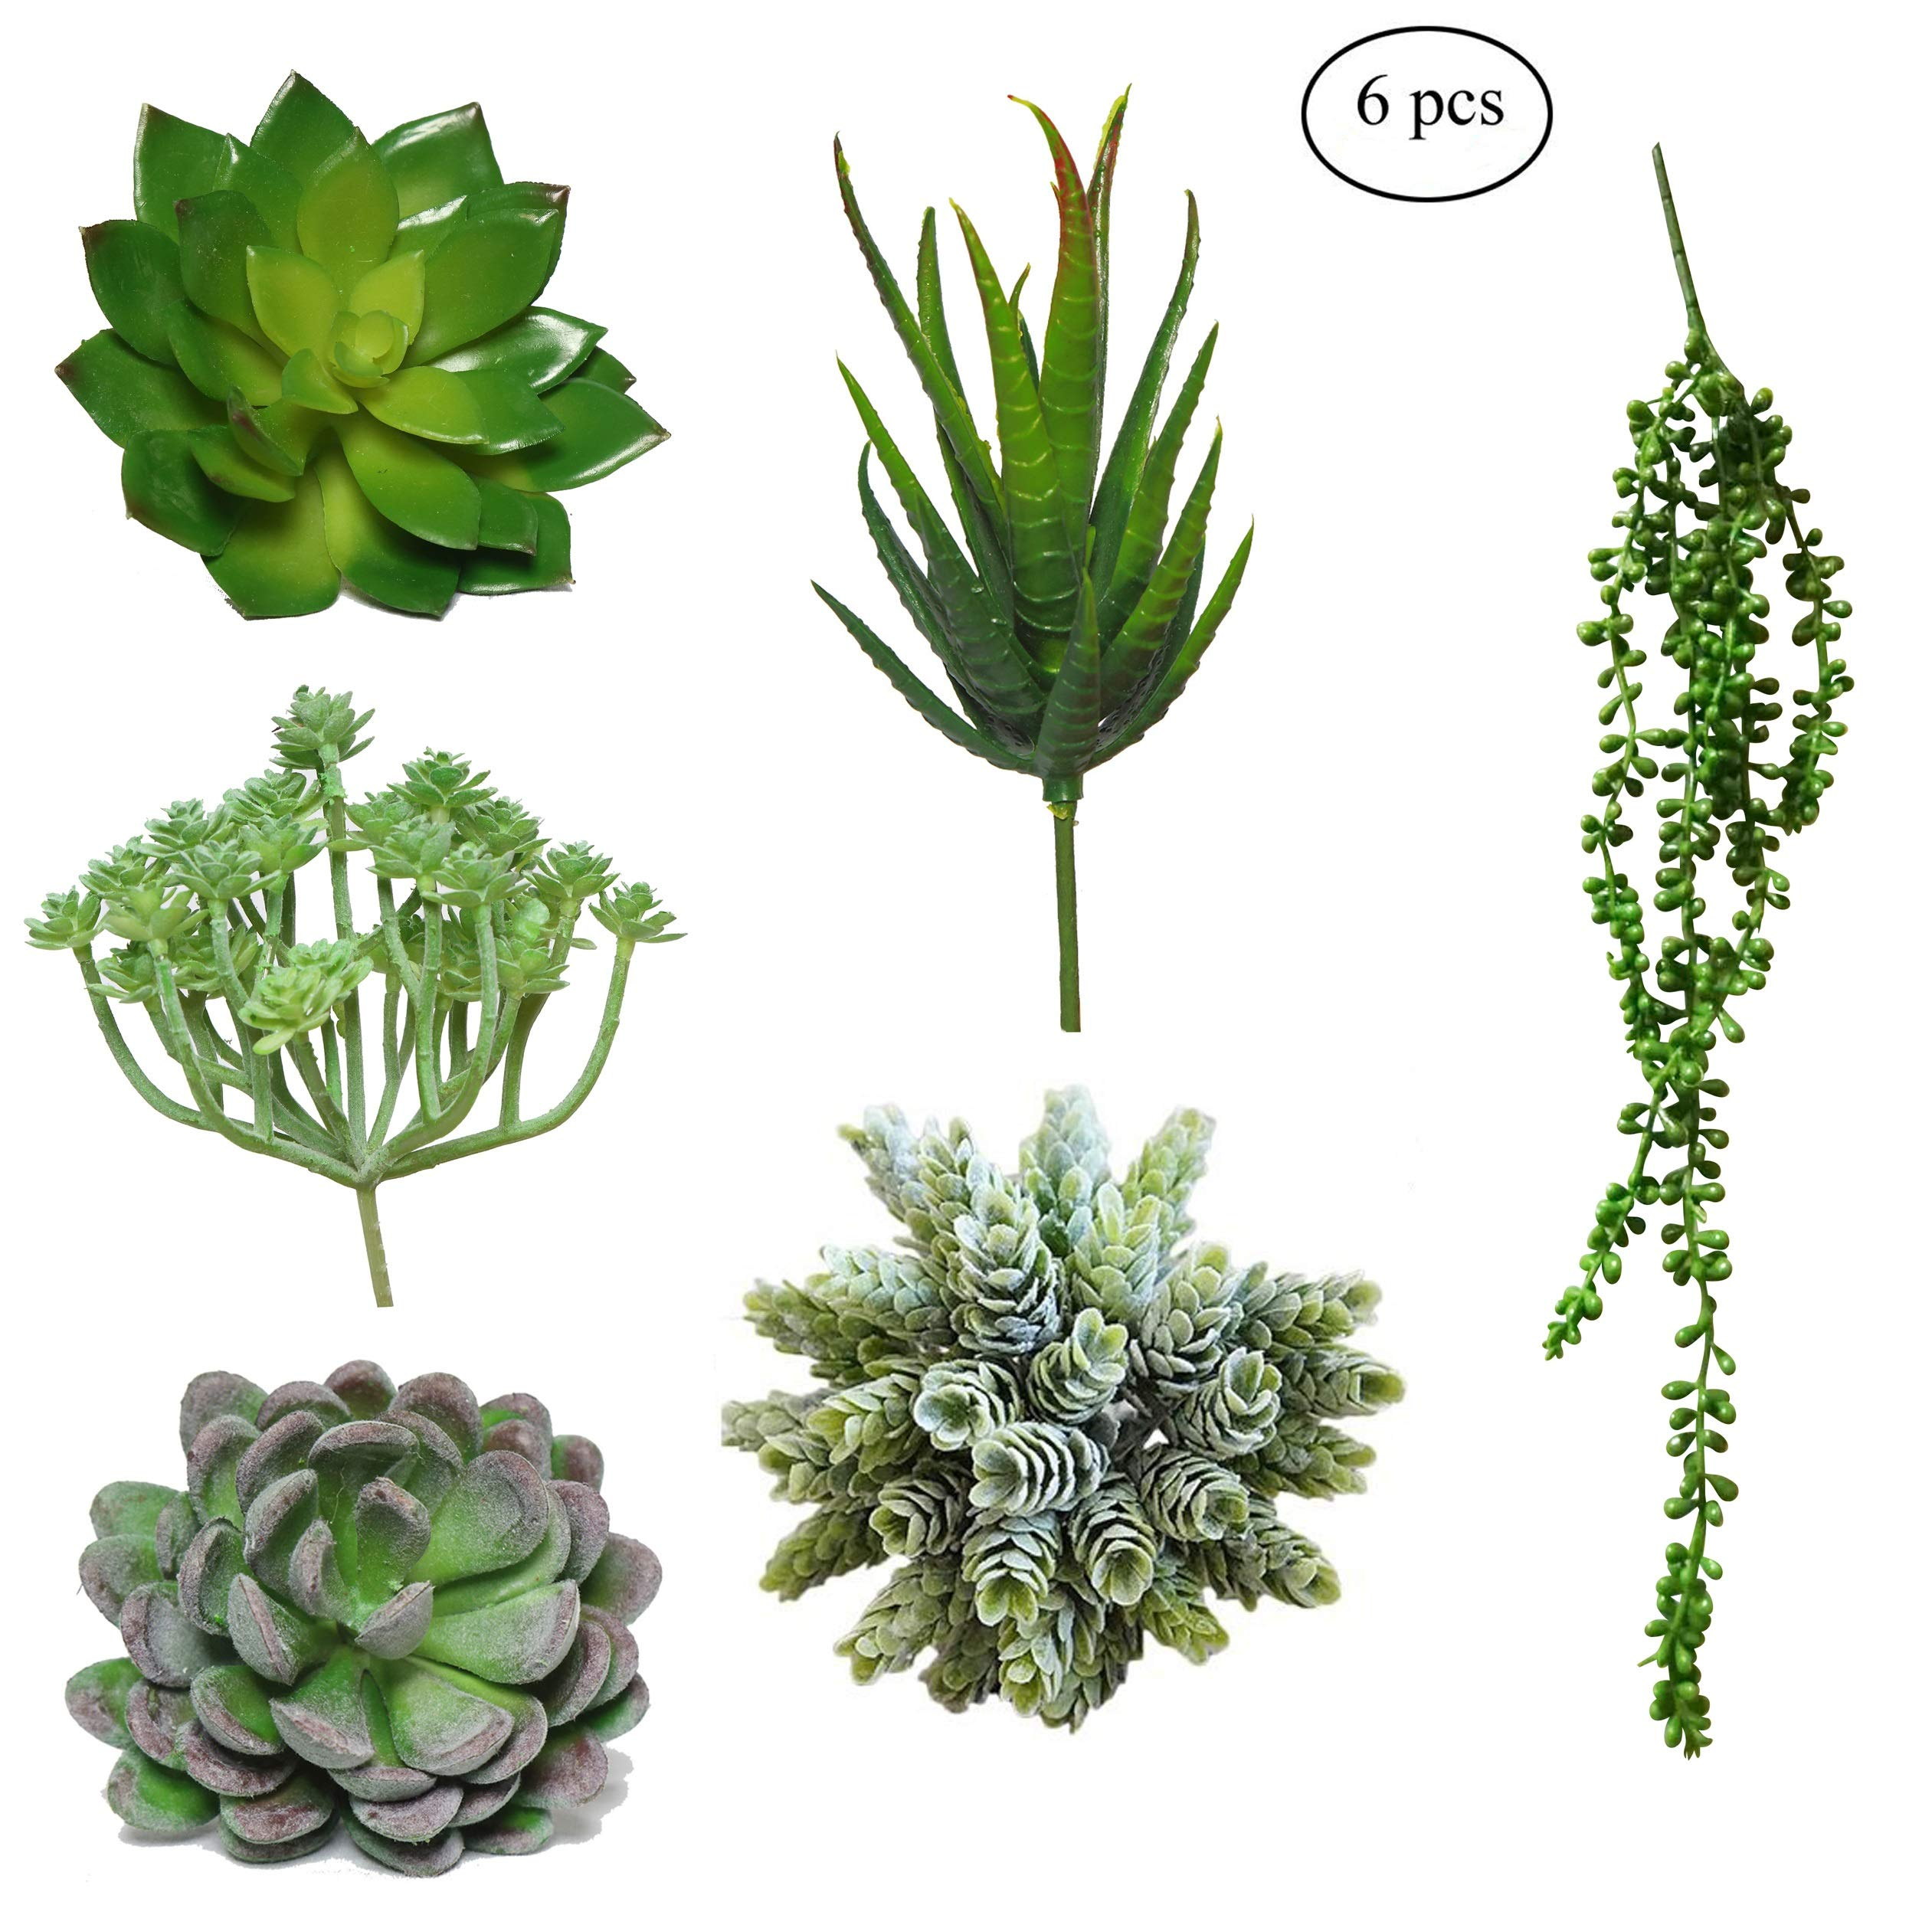 Pack of 6 Fake Succulent Plants | Artificial Succulent Plants Unpotted Fake Plants Artificial Plants | Realistic Floral Home Decor Assorted Aloe Faux Mini Succulent Flowers Bulk Mixed Accent